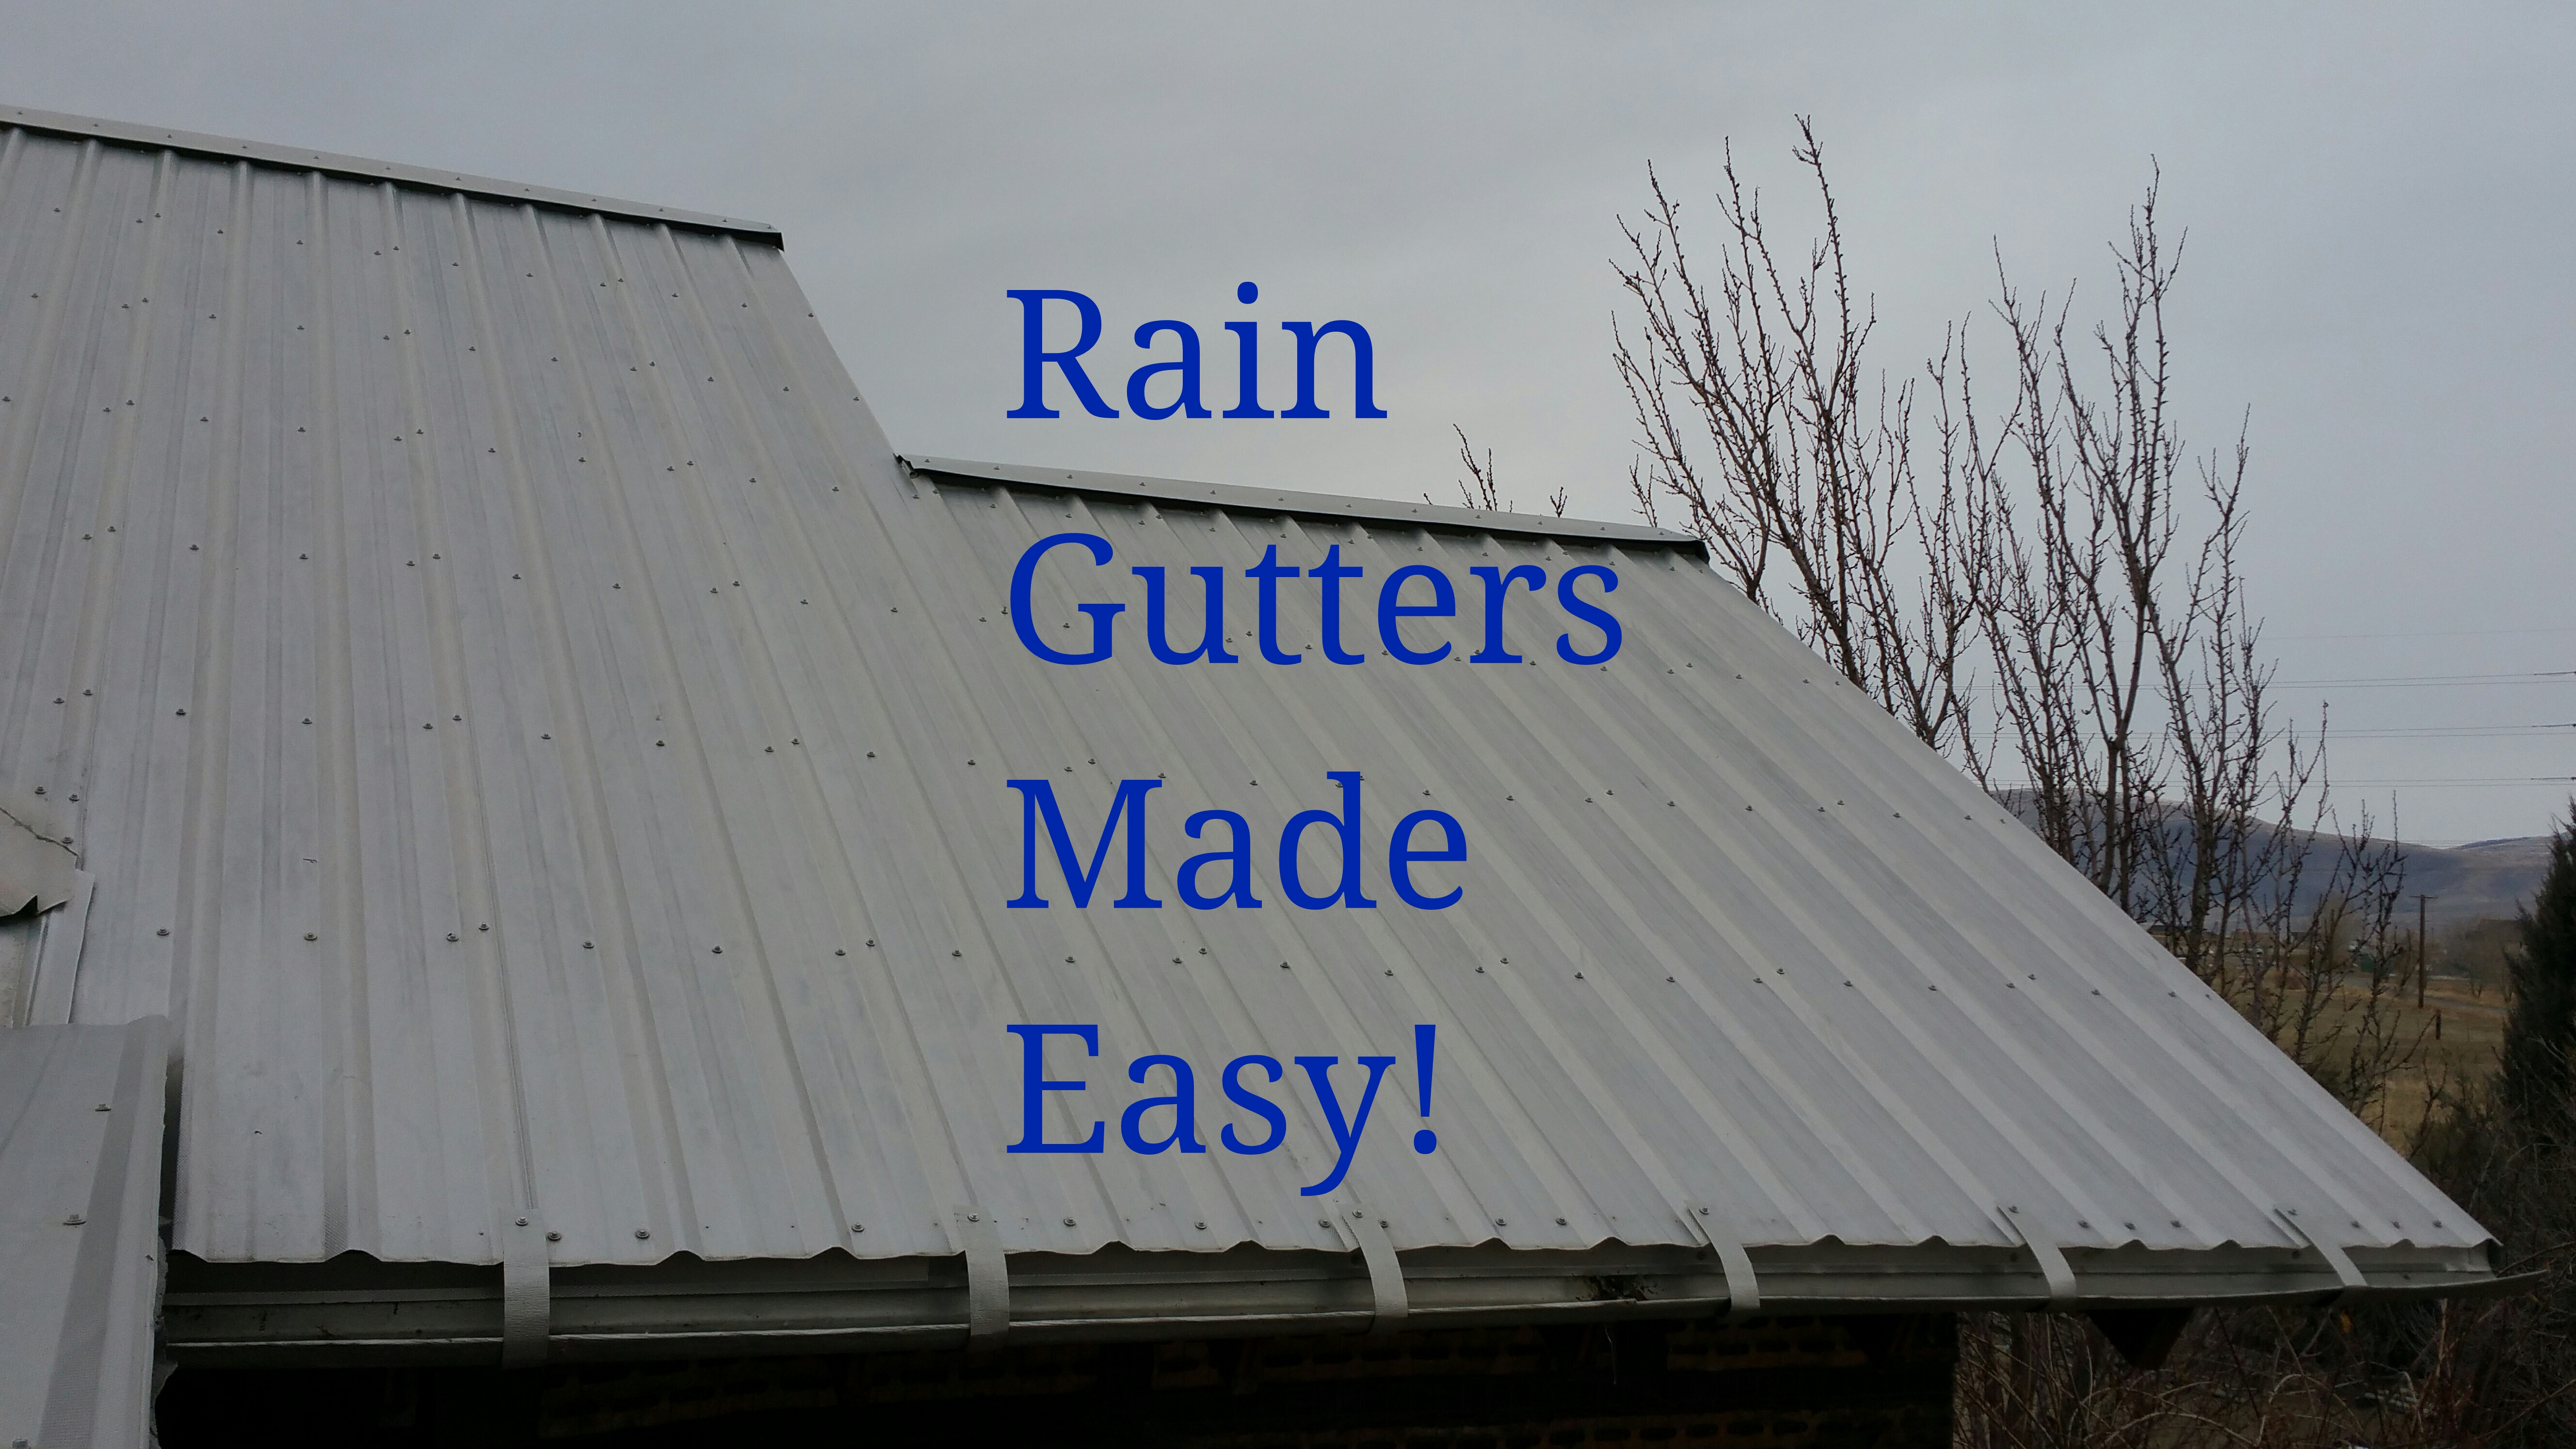 Picture of Rain Gutters Made Easy!